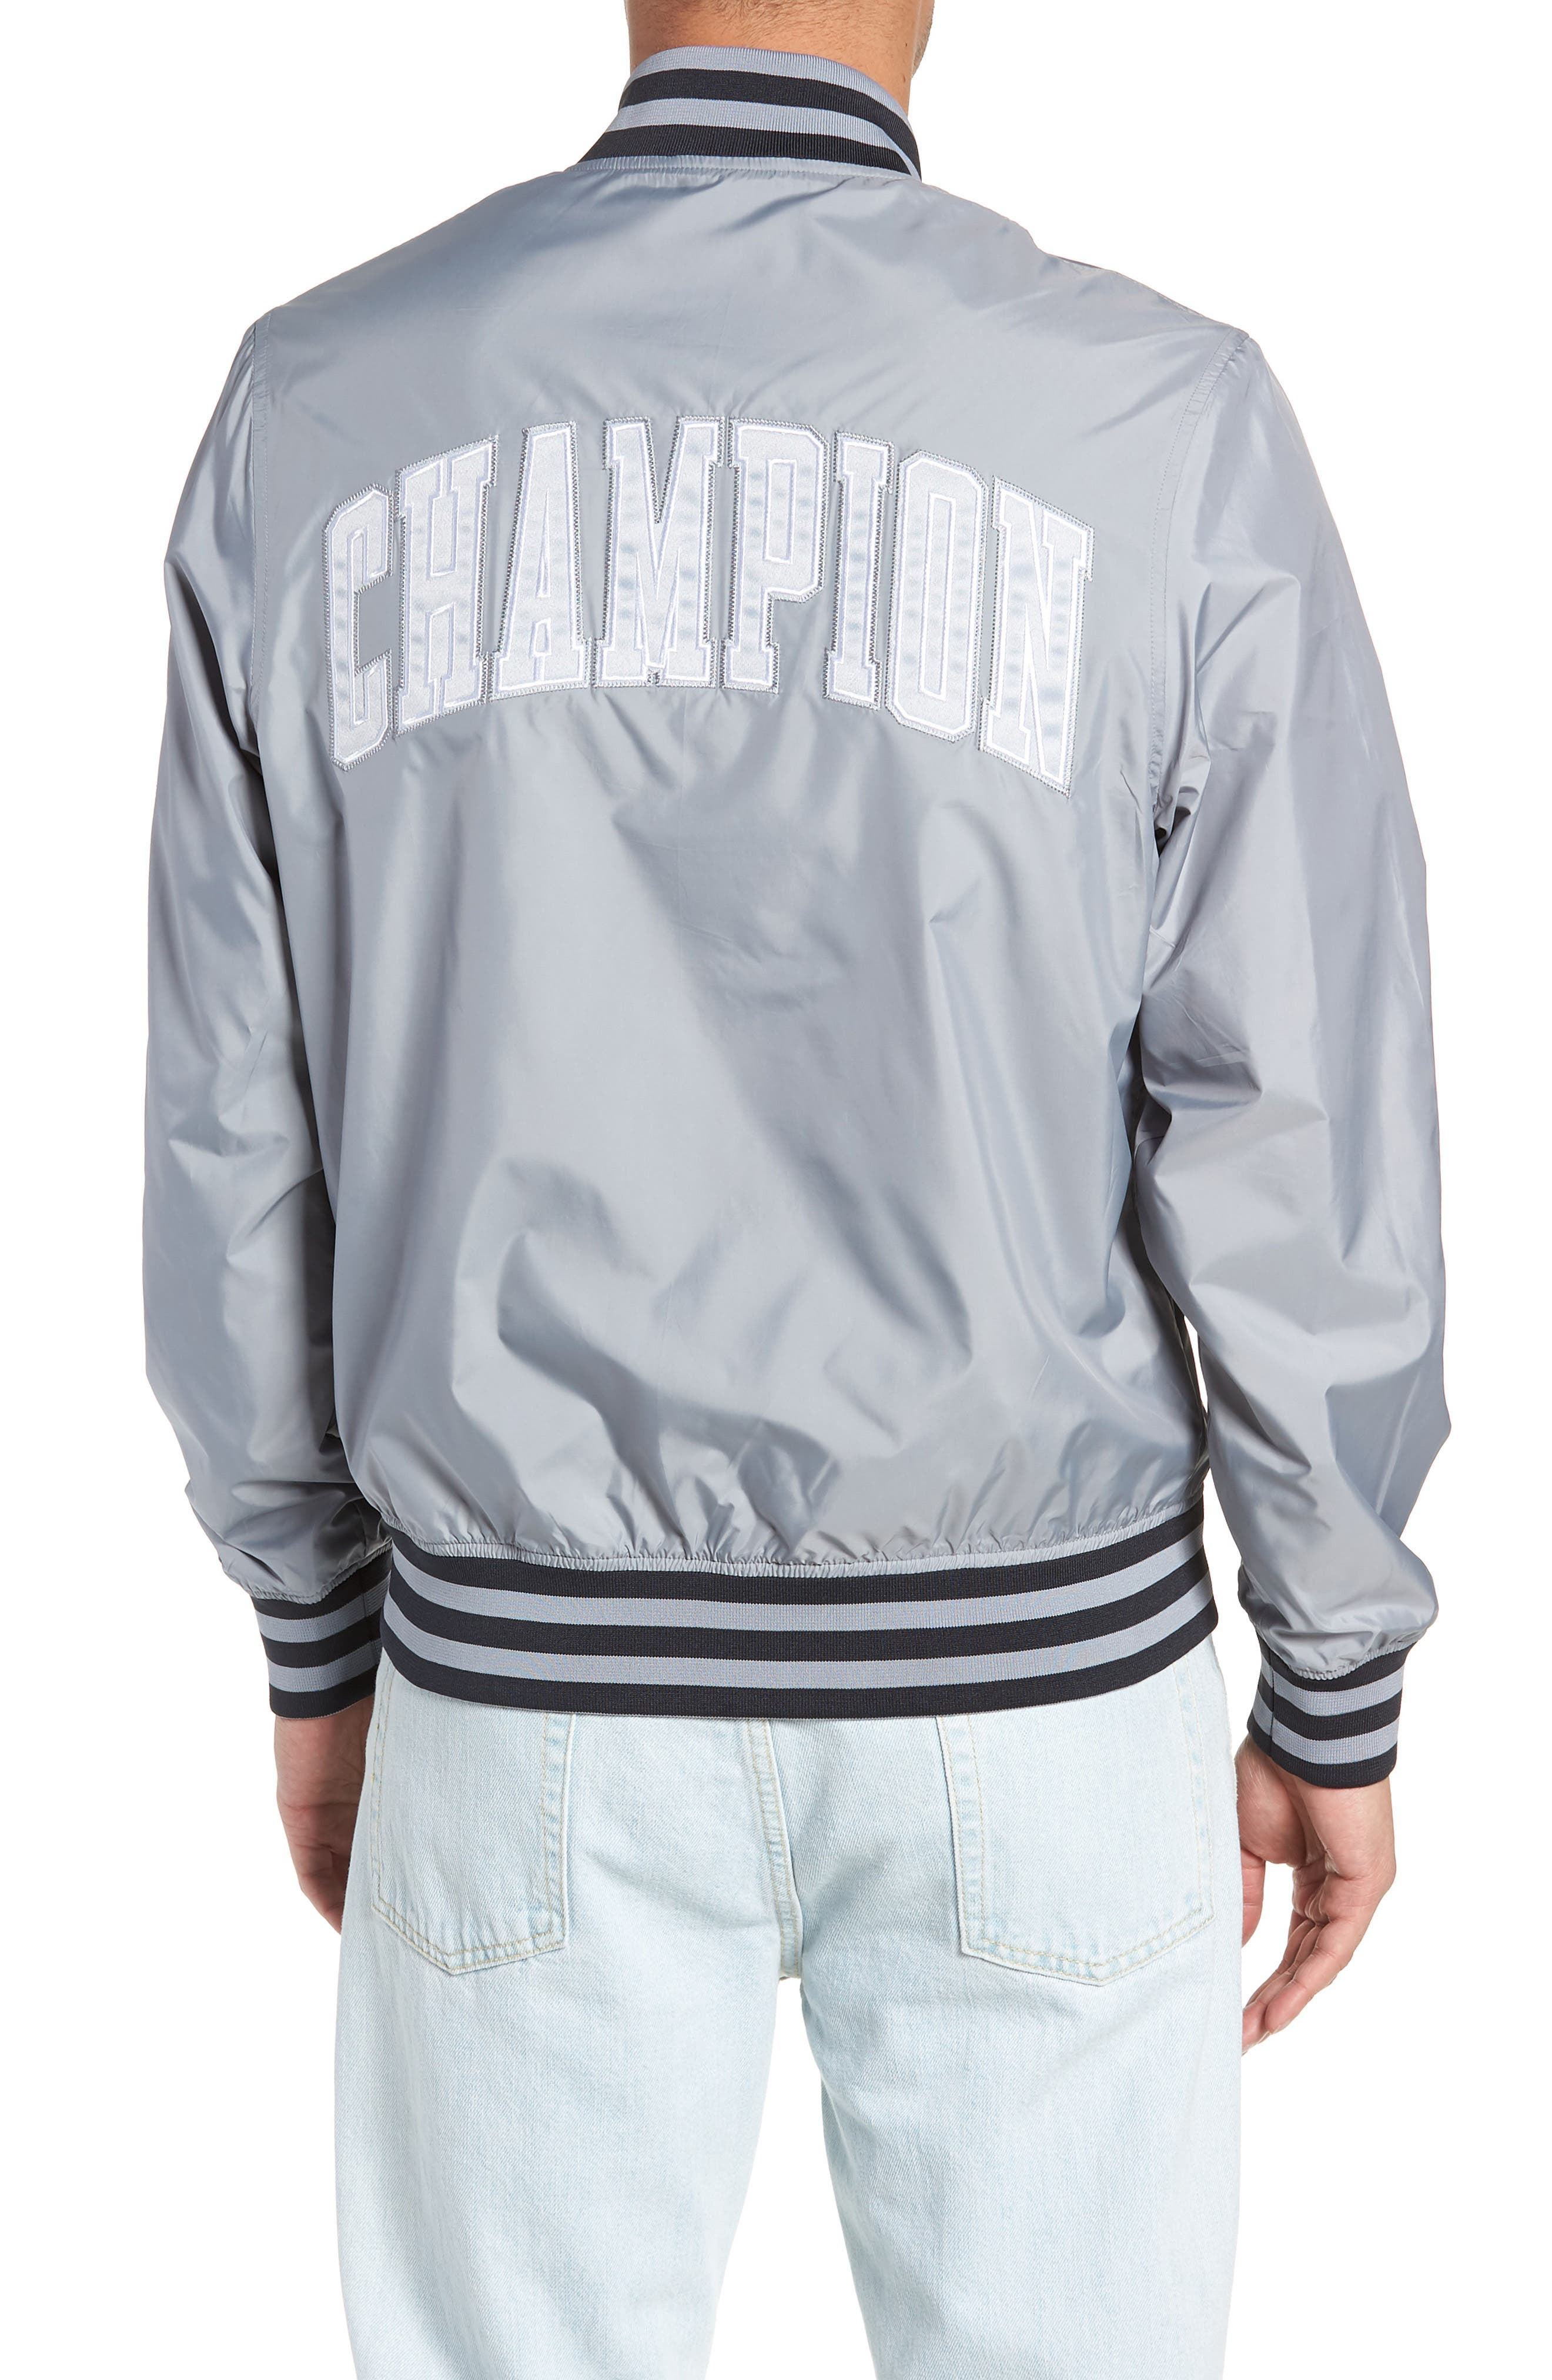 Satin Baseball Jacket,                             Alternate thumbnail 2, color,                             030